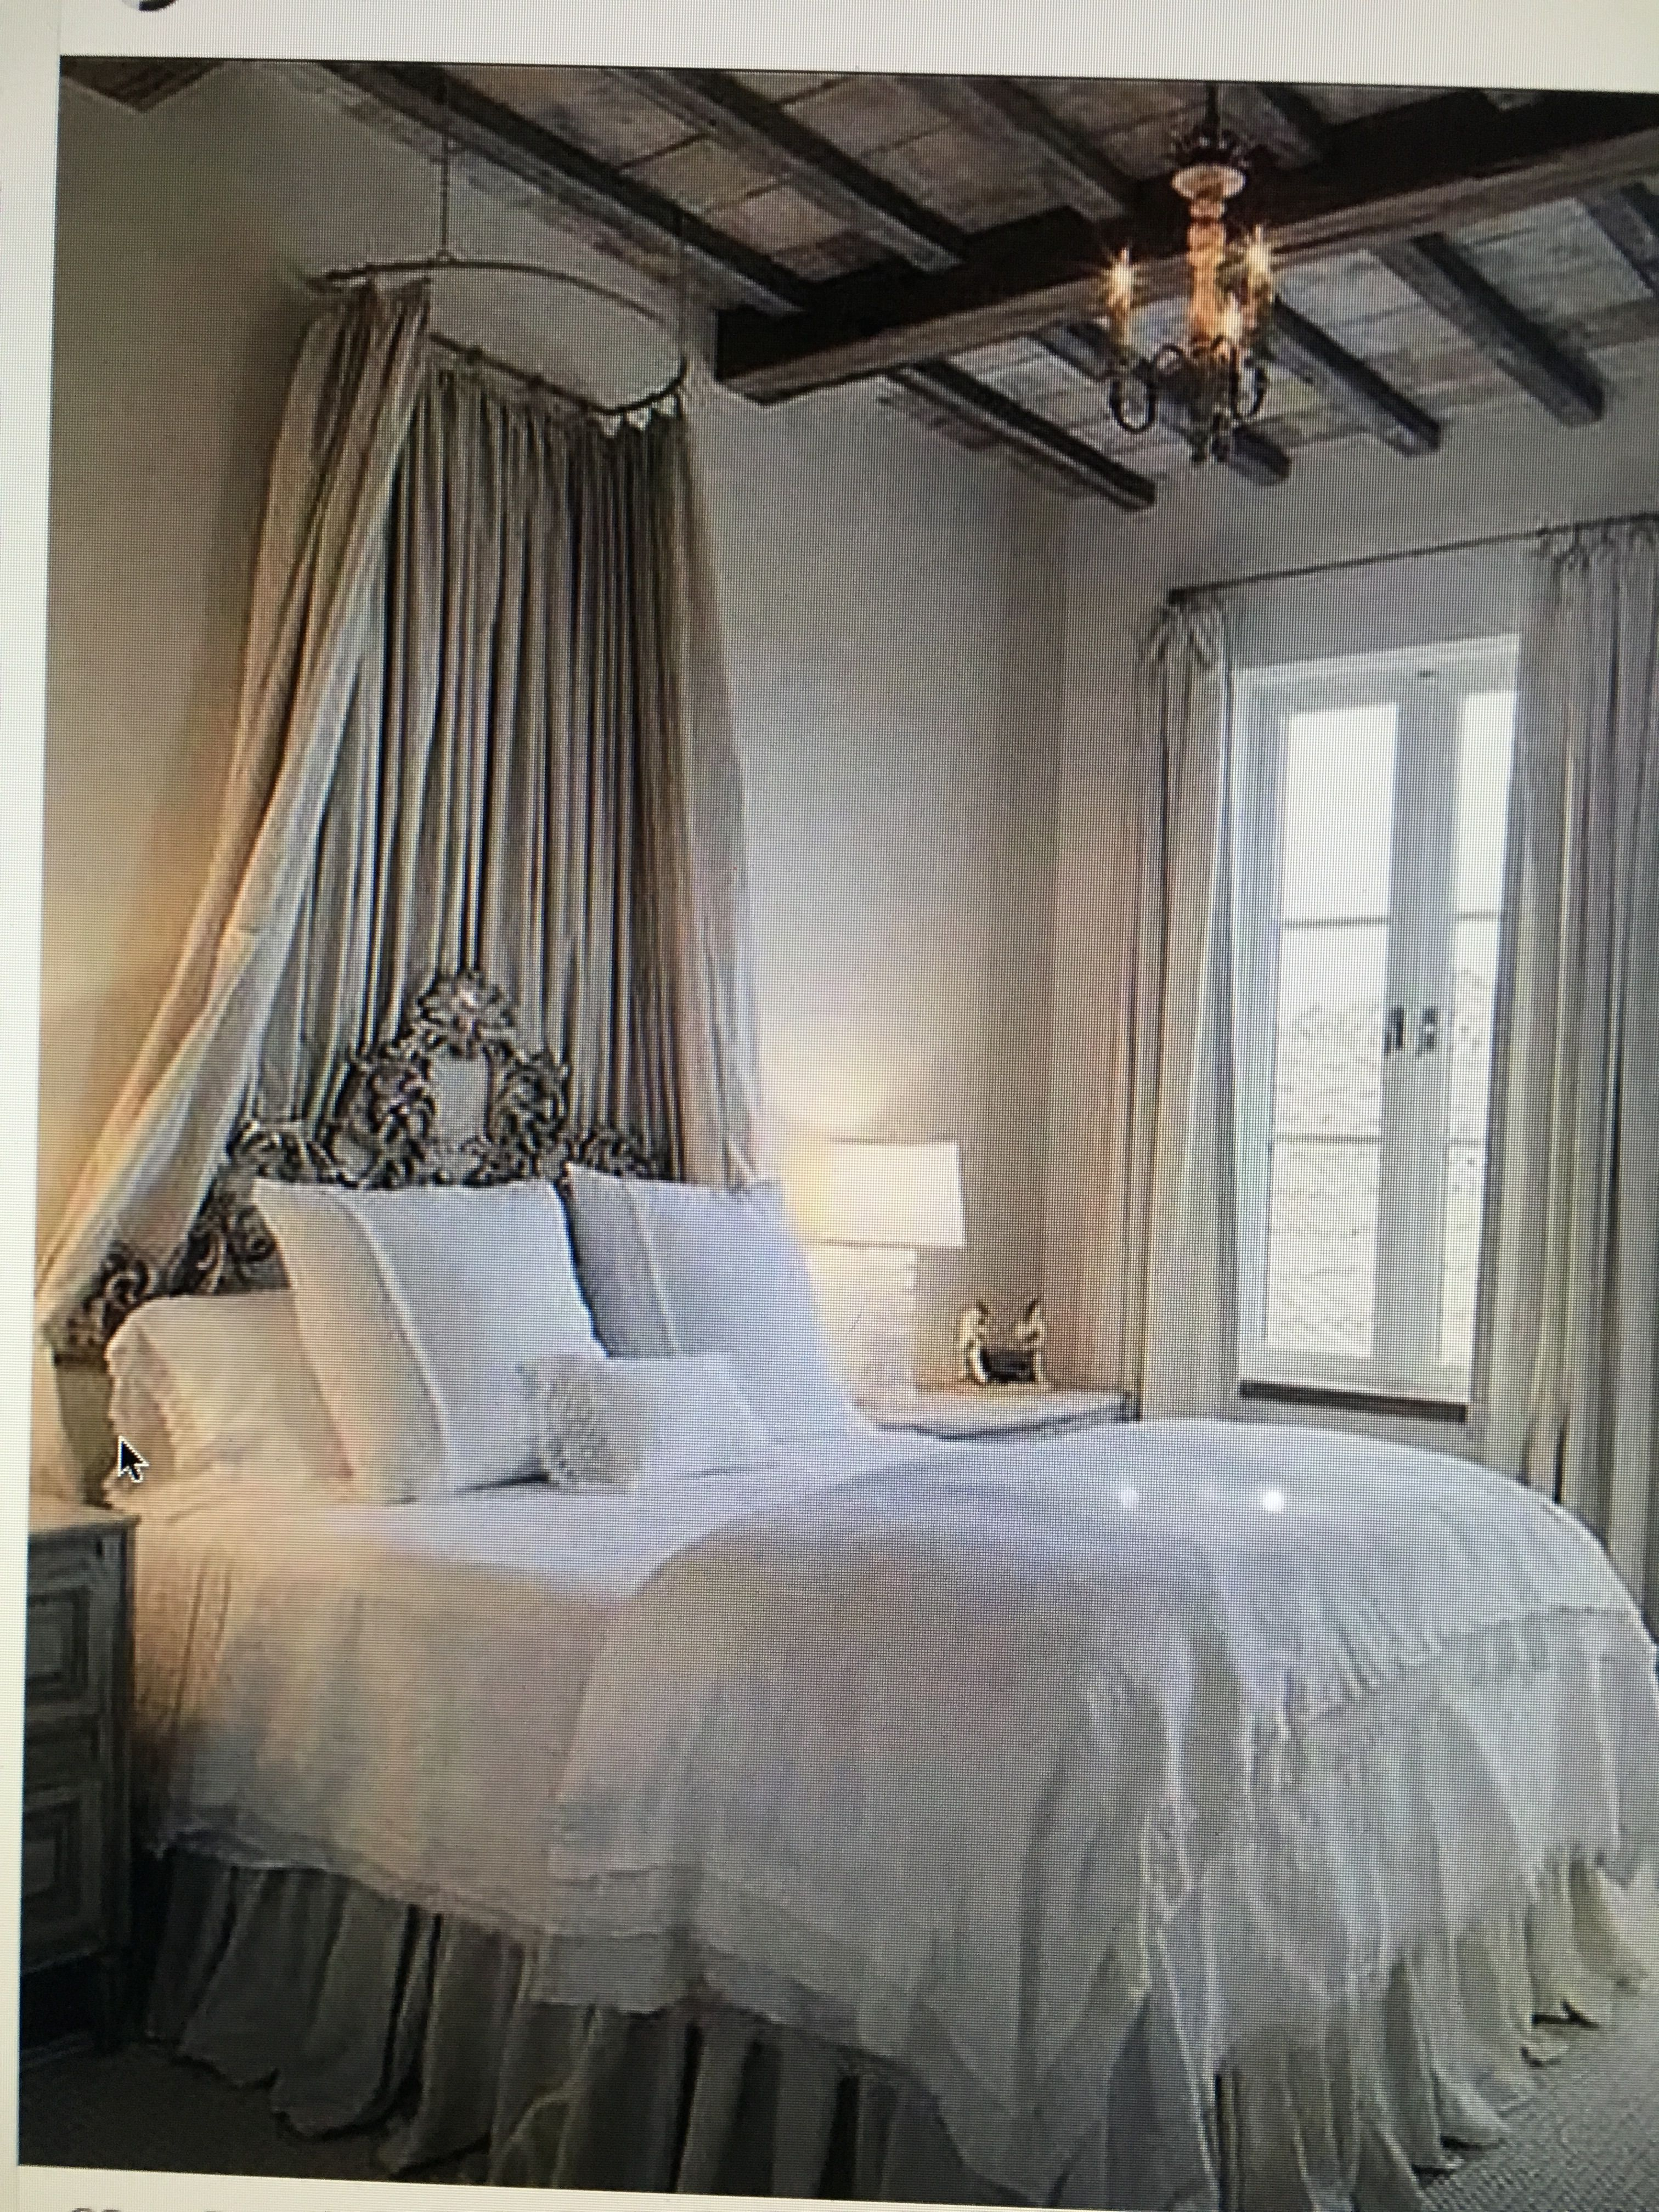 Rustic Romantic Bedroom Ideas: Pin By Agnes Strauss On Design Ideas .... New House (With